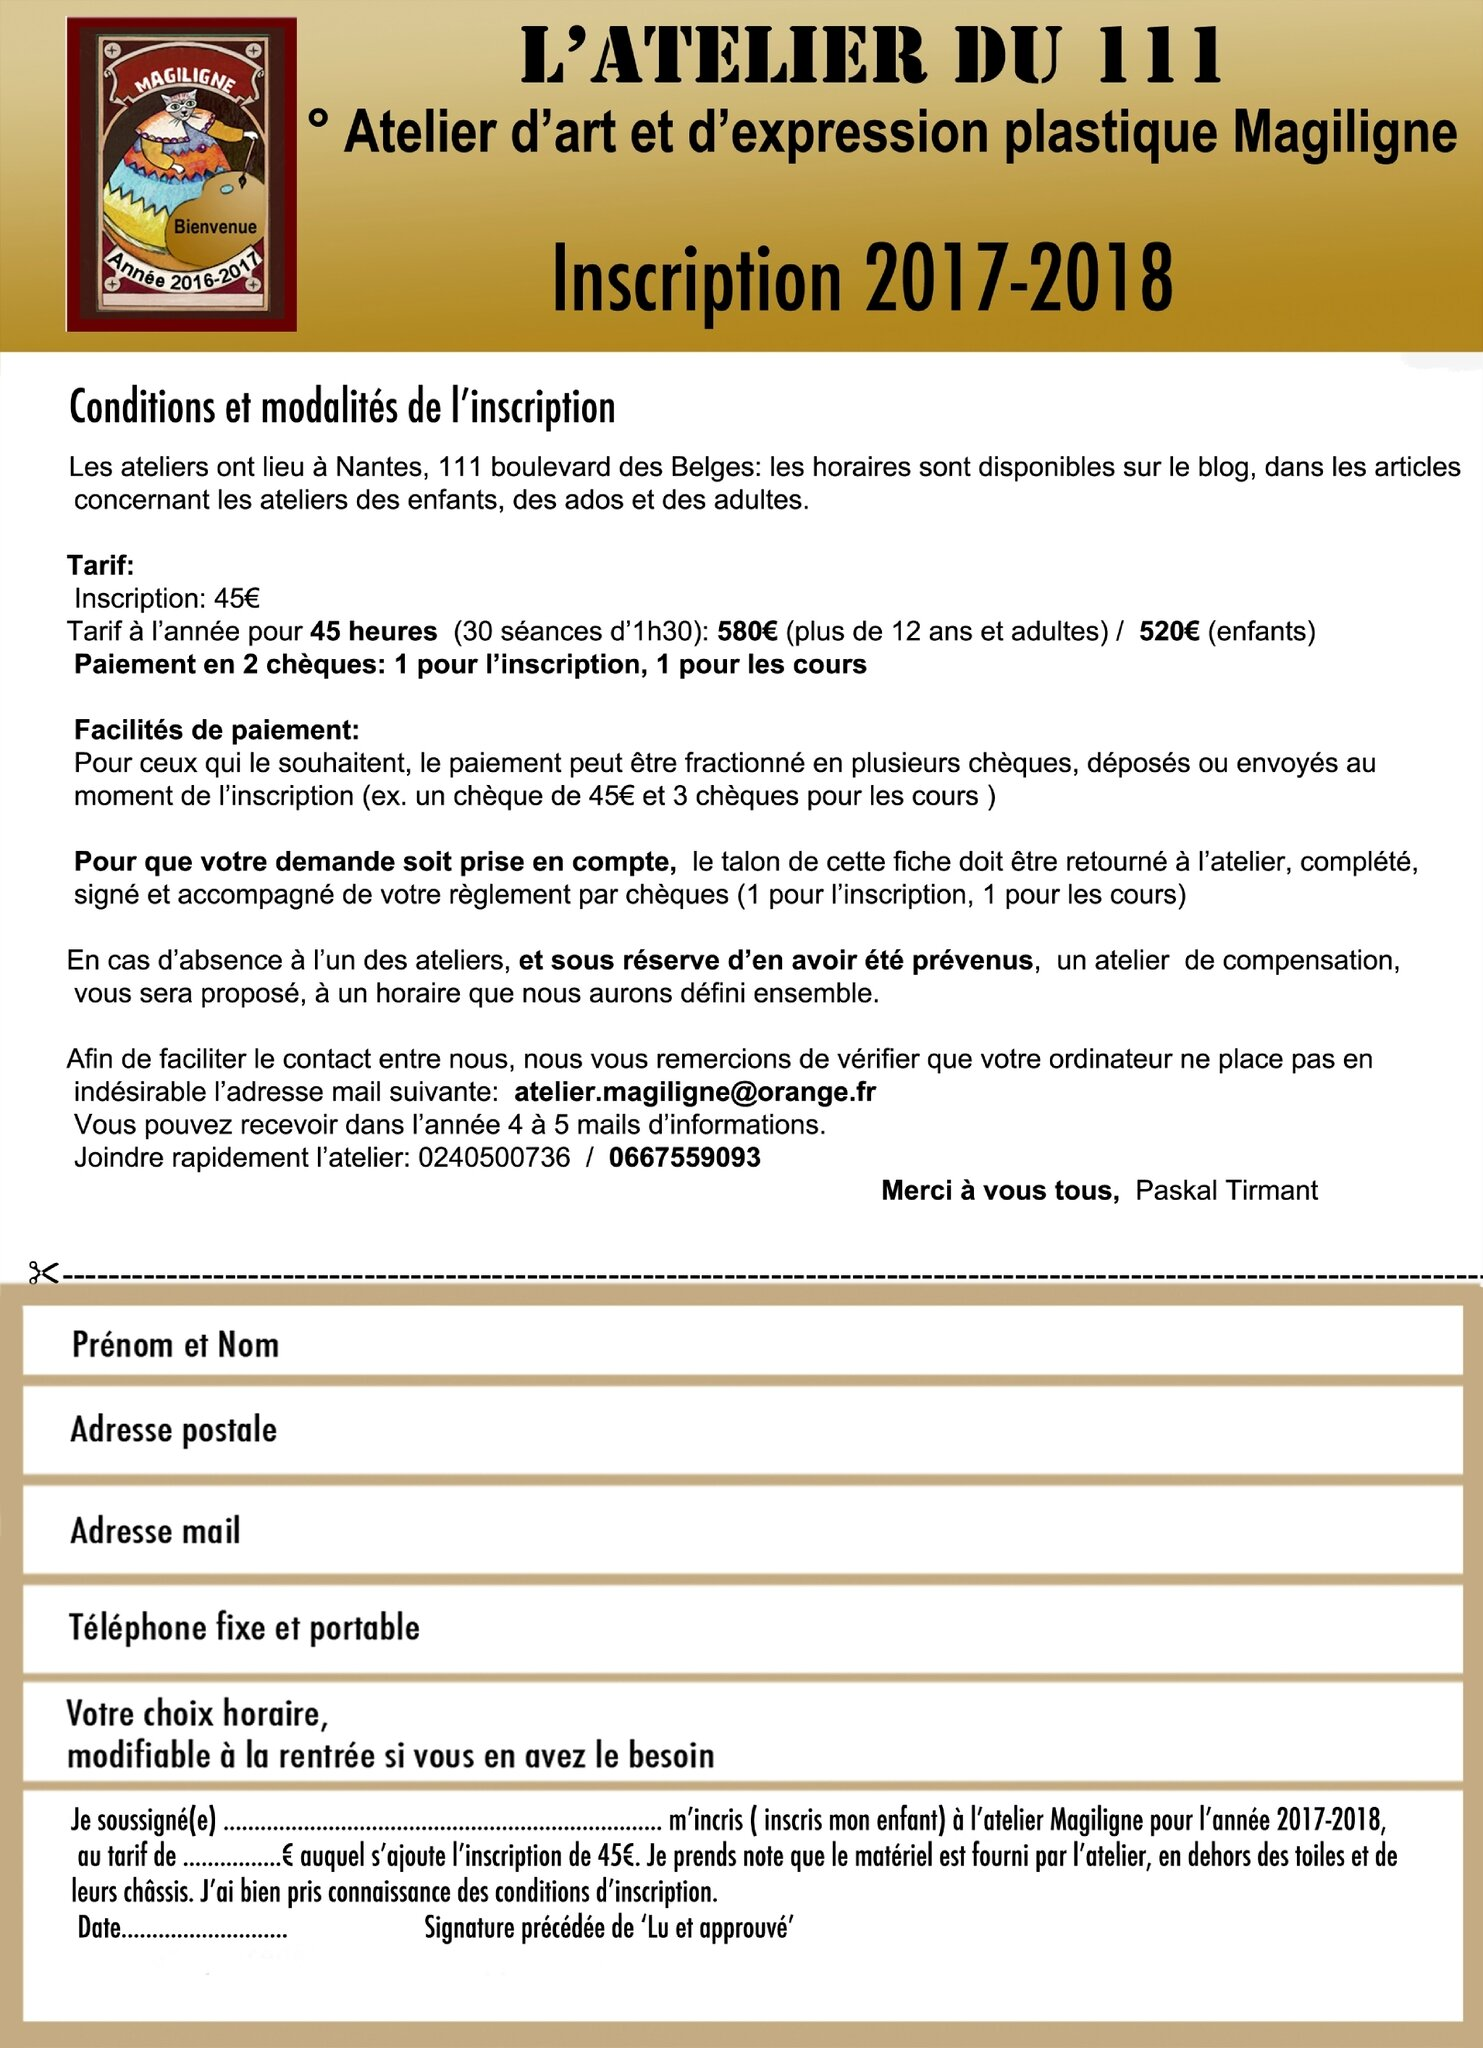 Fiche d'inscription 2017-2018